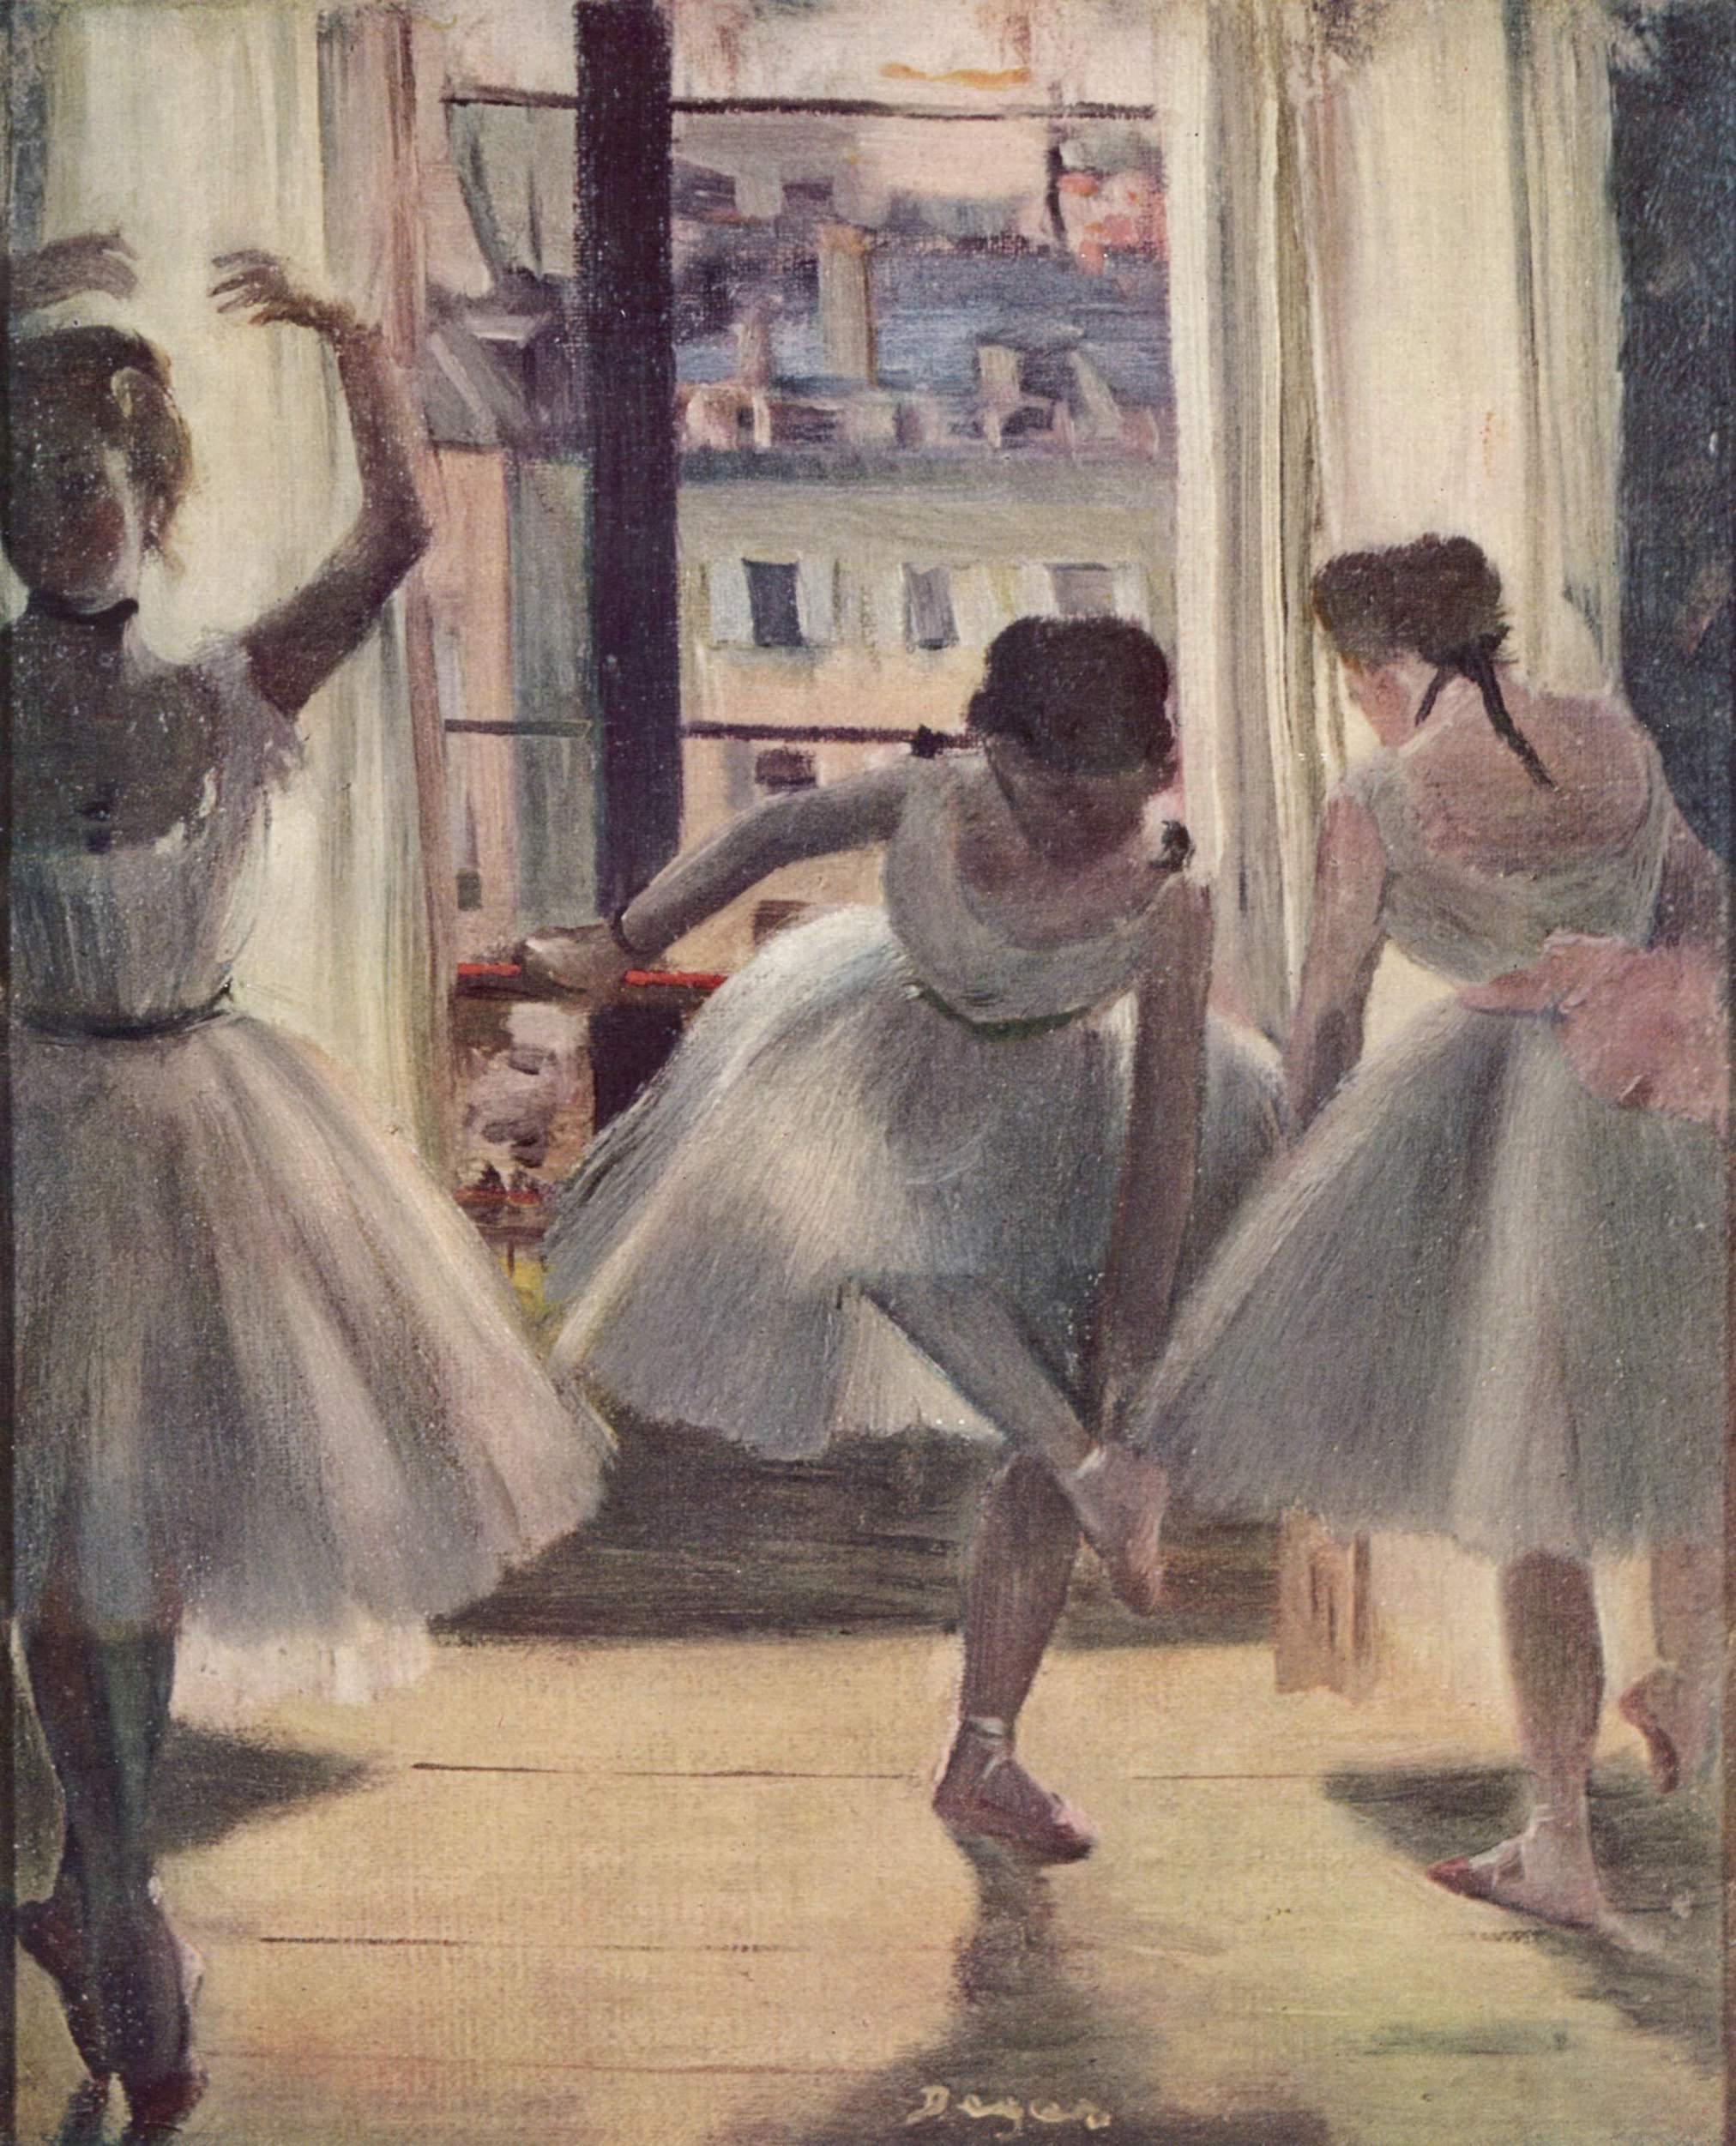 three-dancers-in-a-practice-room-edgar-degas-julia-carevic